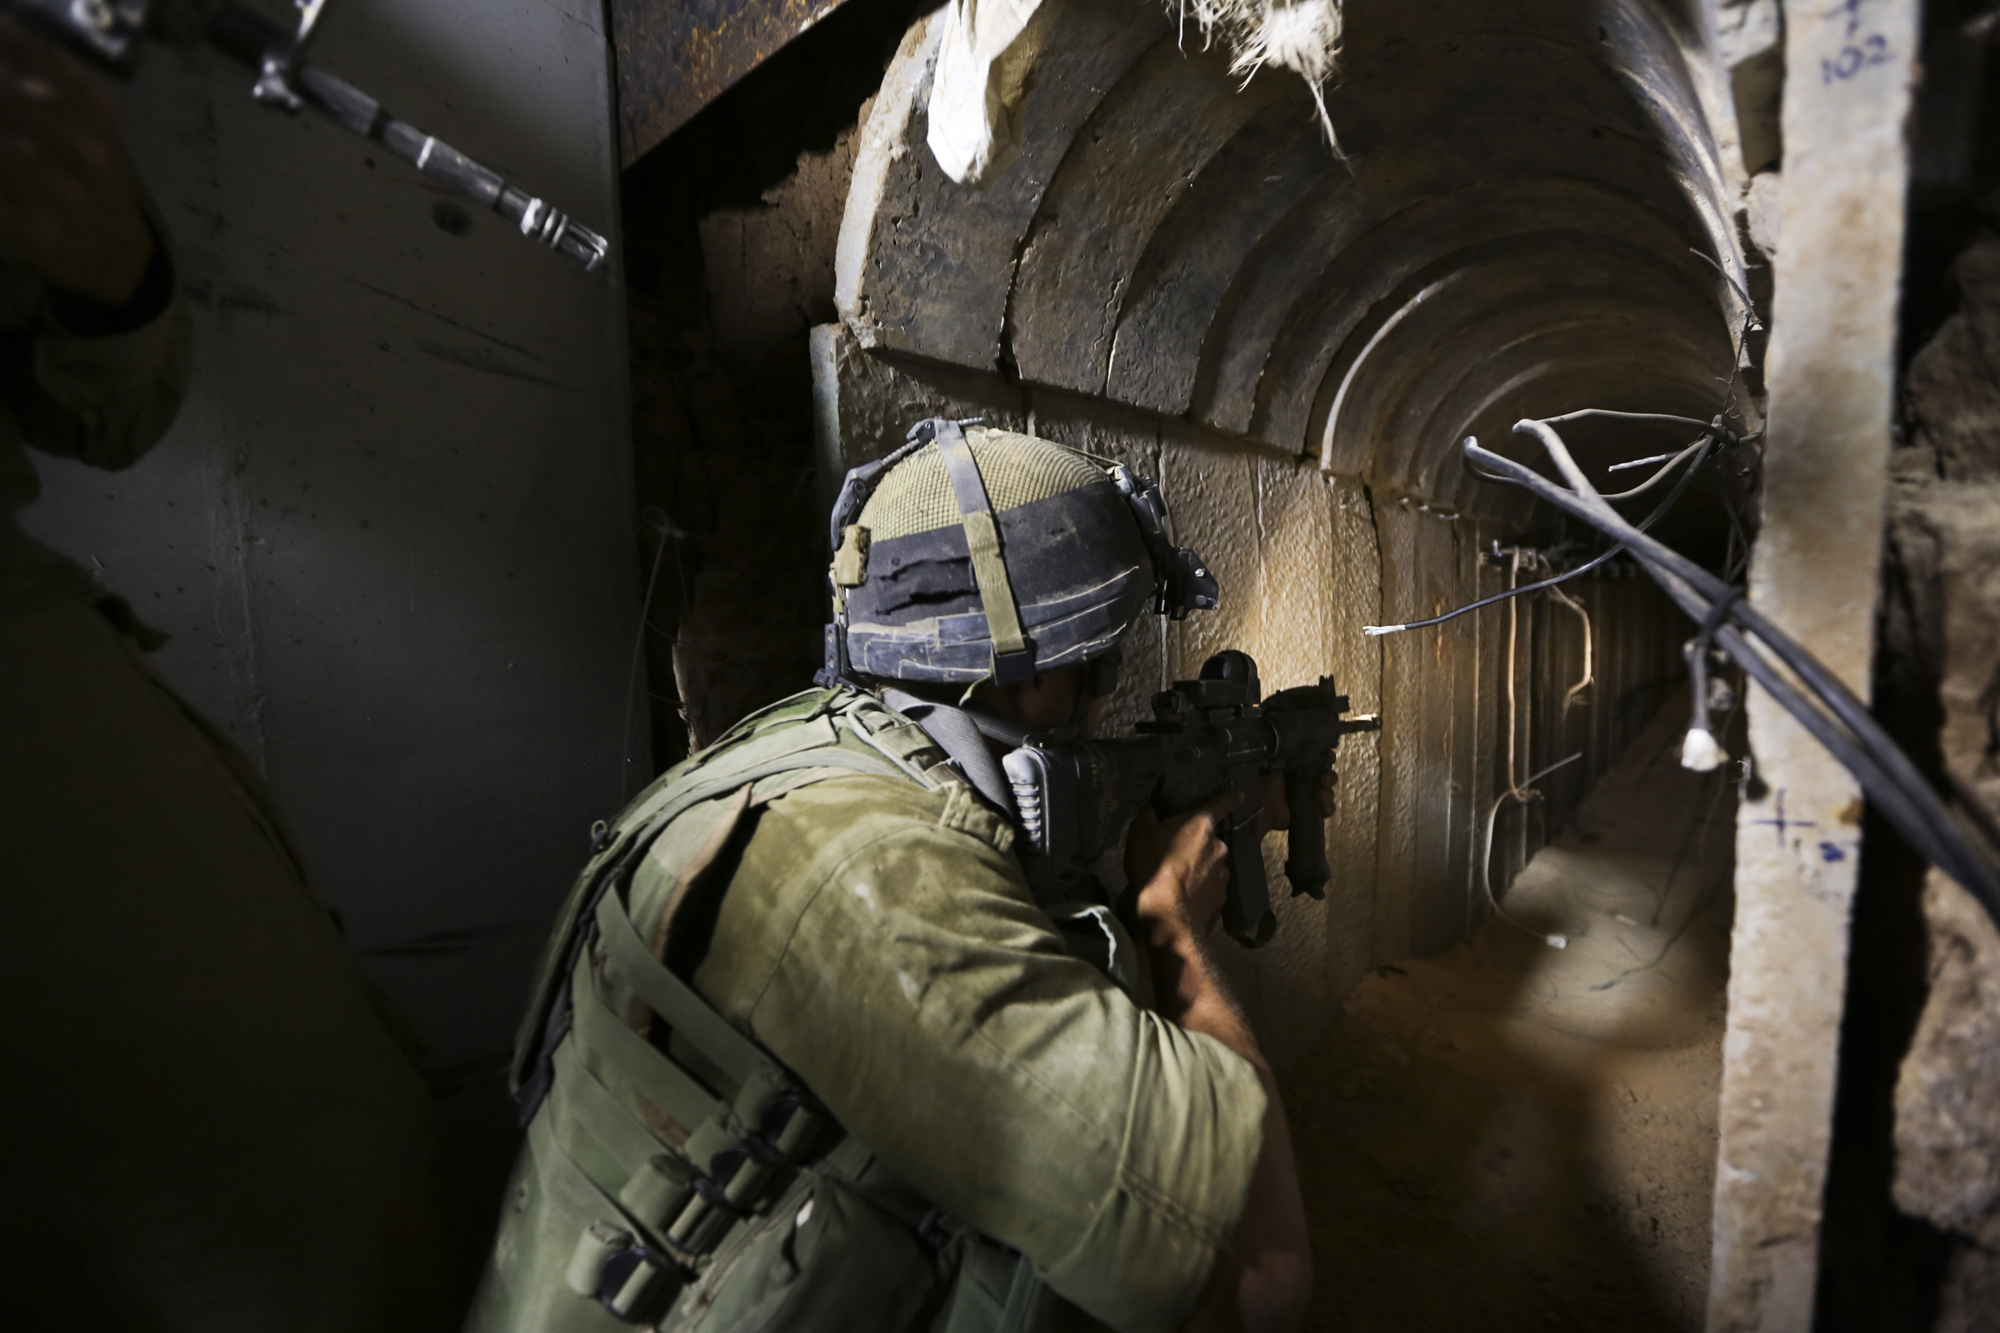 IDF soldiers of the Paratroopers Brigade guarding and neutralizing tunnels that were dug by the Hamas organization and leading into Israel,  Khan Younis, Gaza, July 30, 2014.